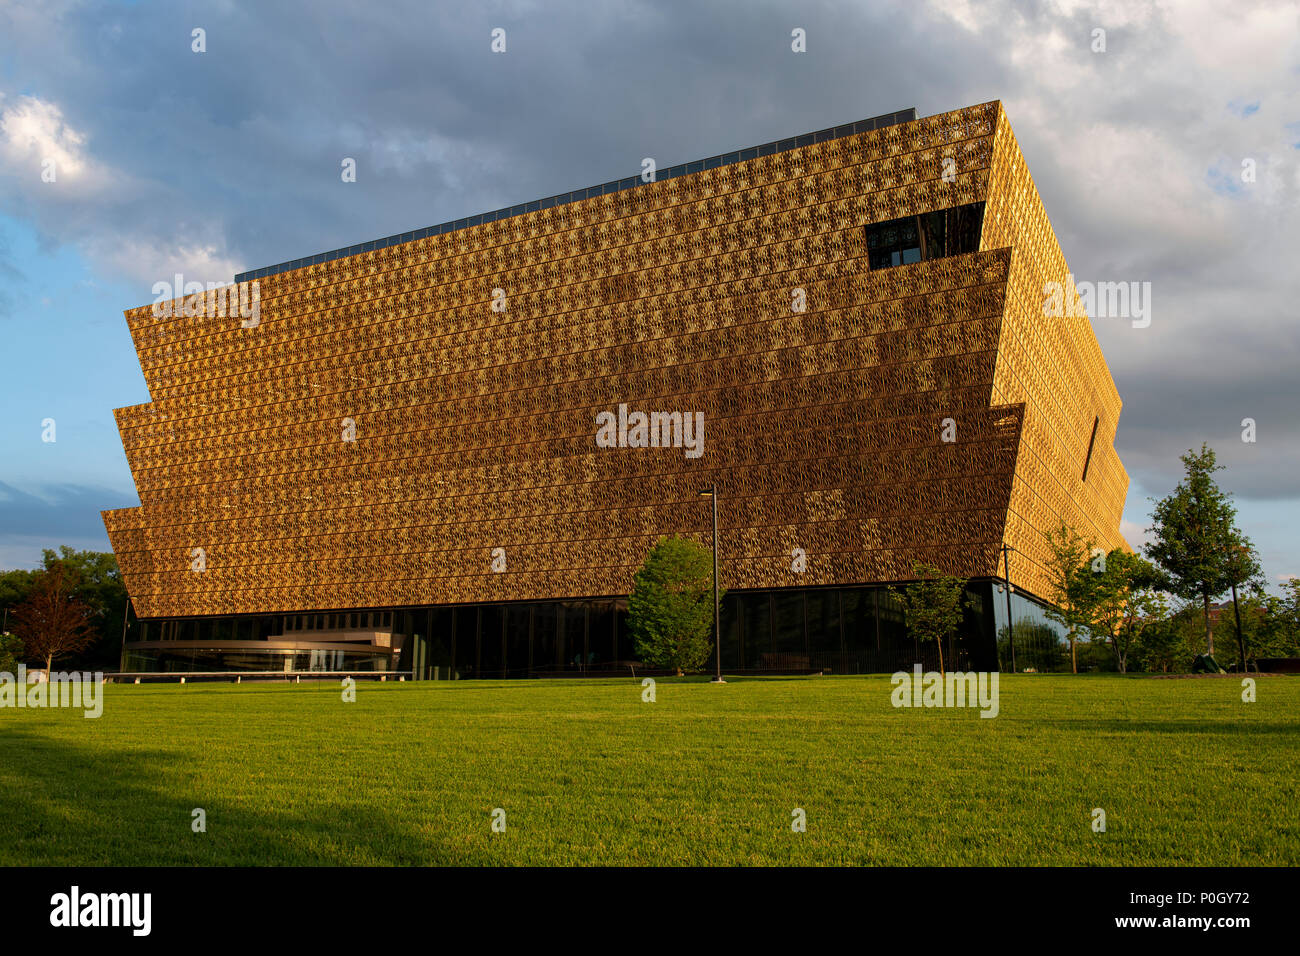 usa-washington-dc-smithsonian-museum-of-african-american-history-and-culture-on-the-national-mall-P0GY72.jpg